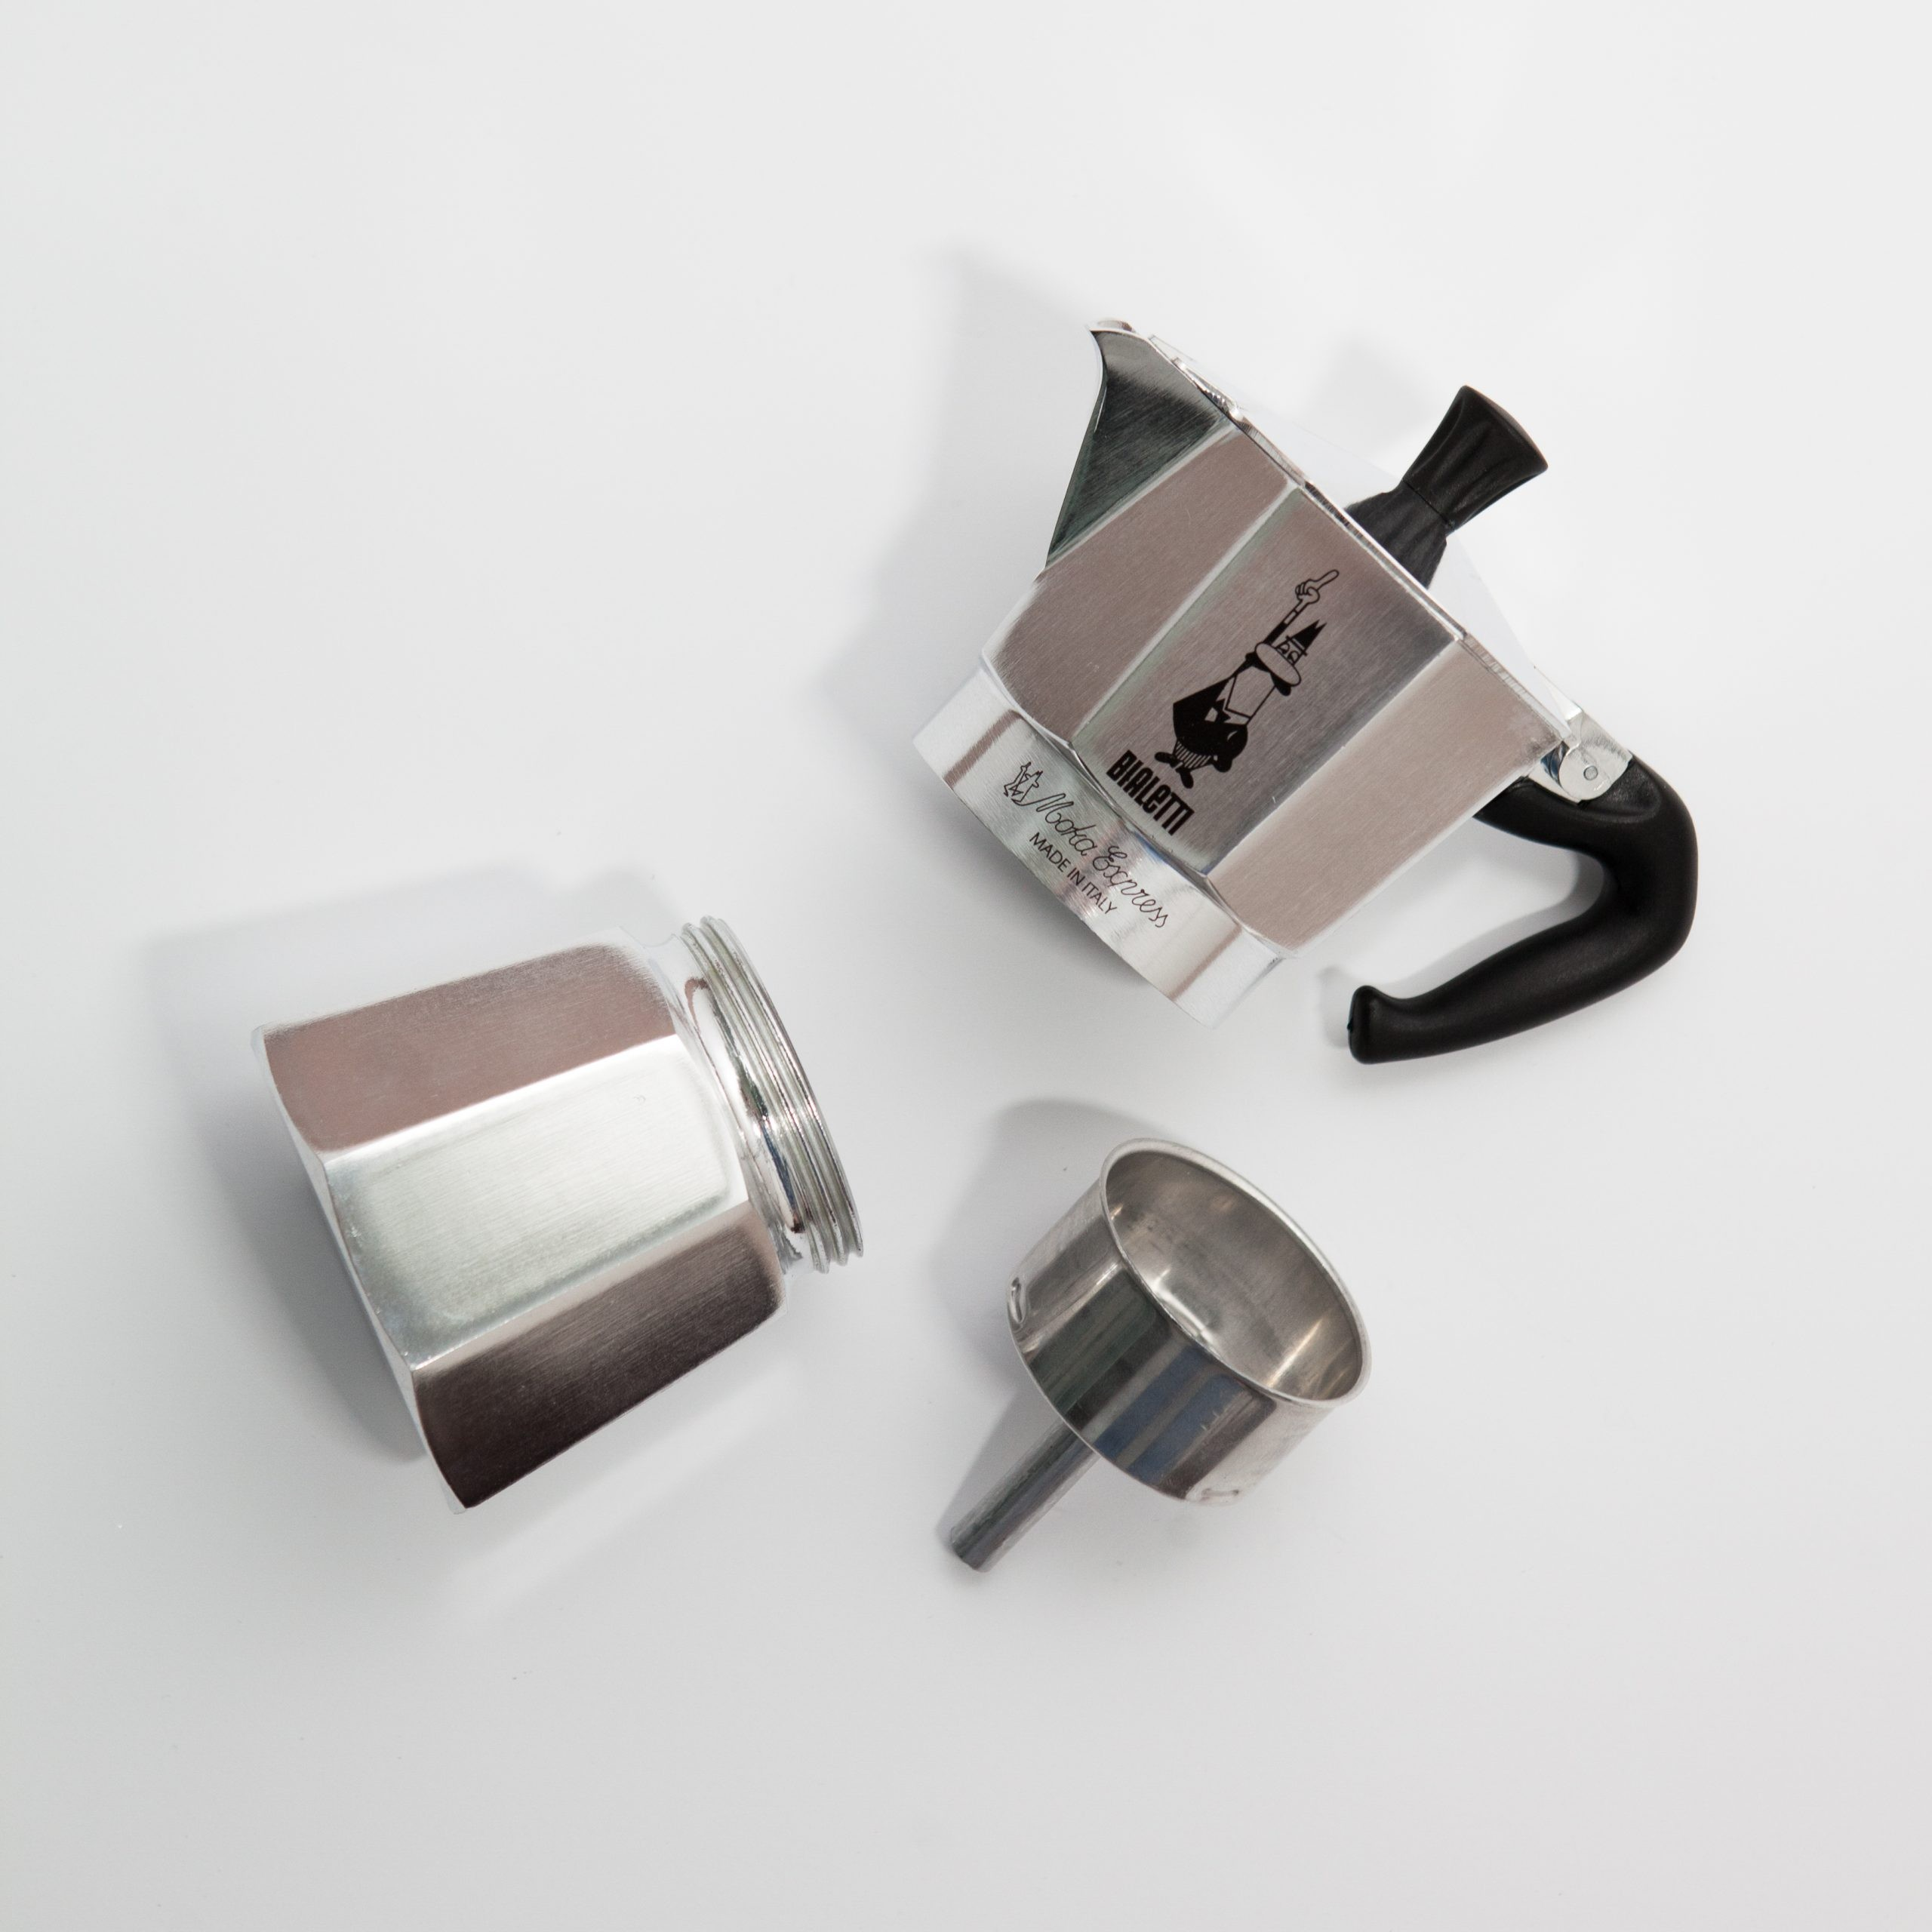 Bialetti Moka Express 4tz - Coffee Gang | JestemSlow.pl